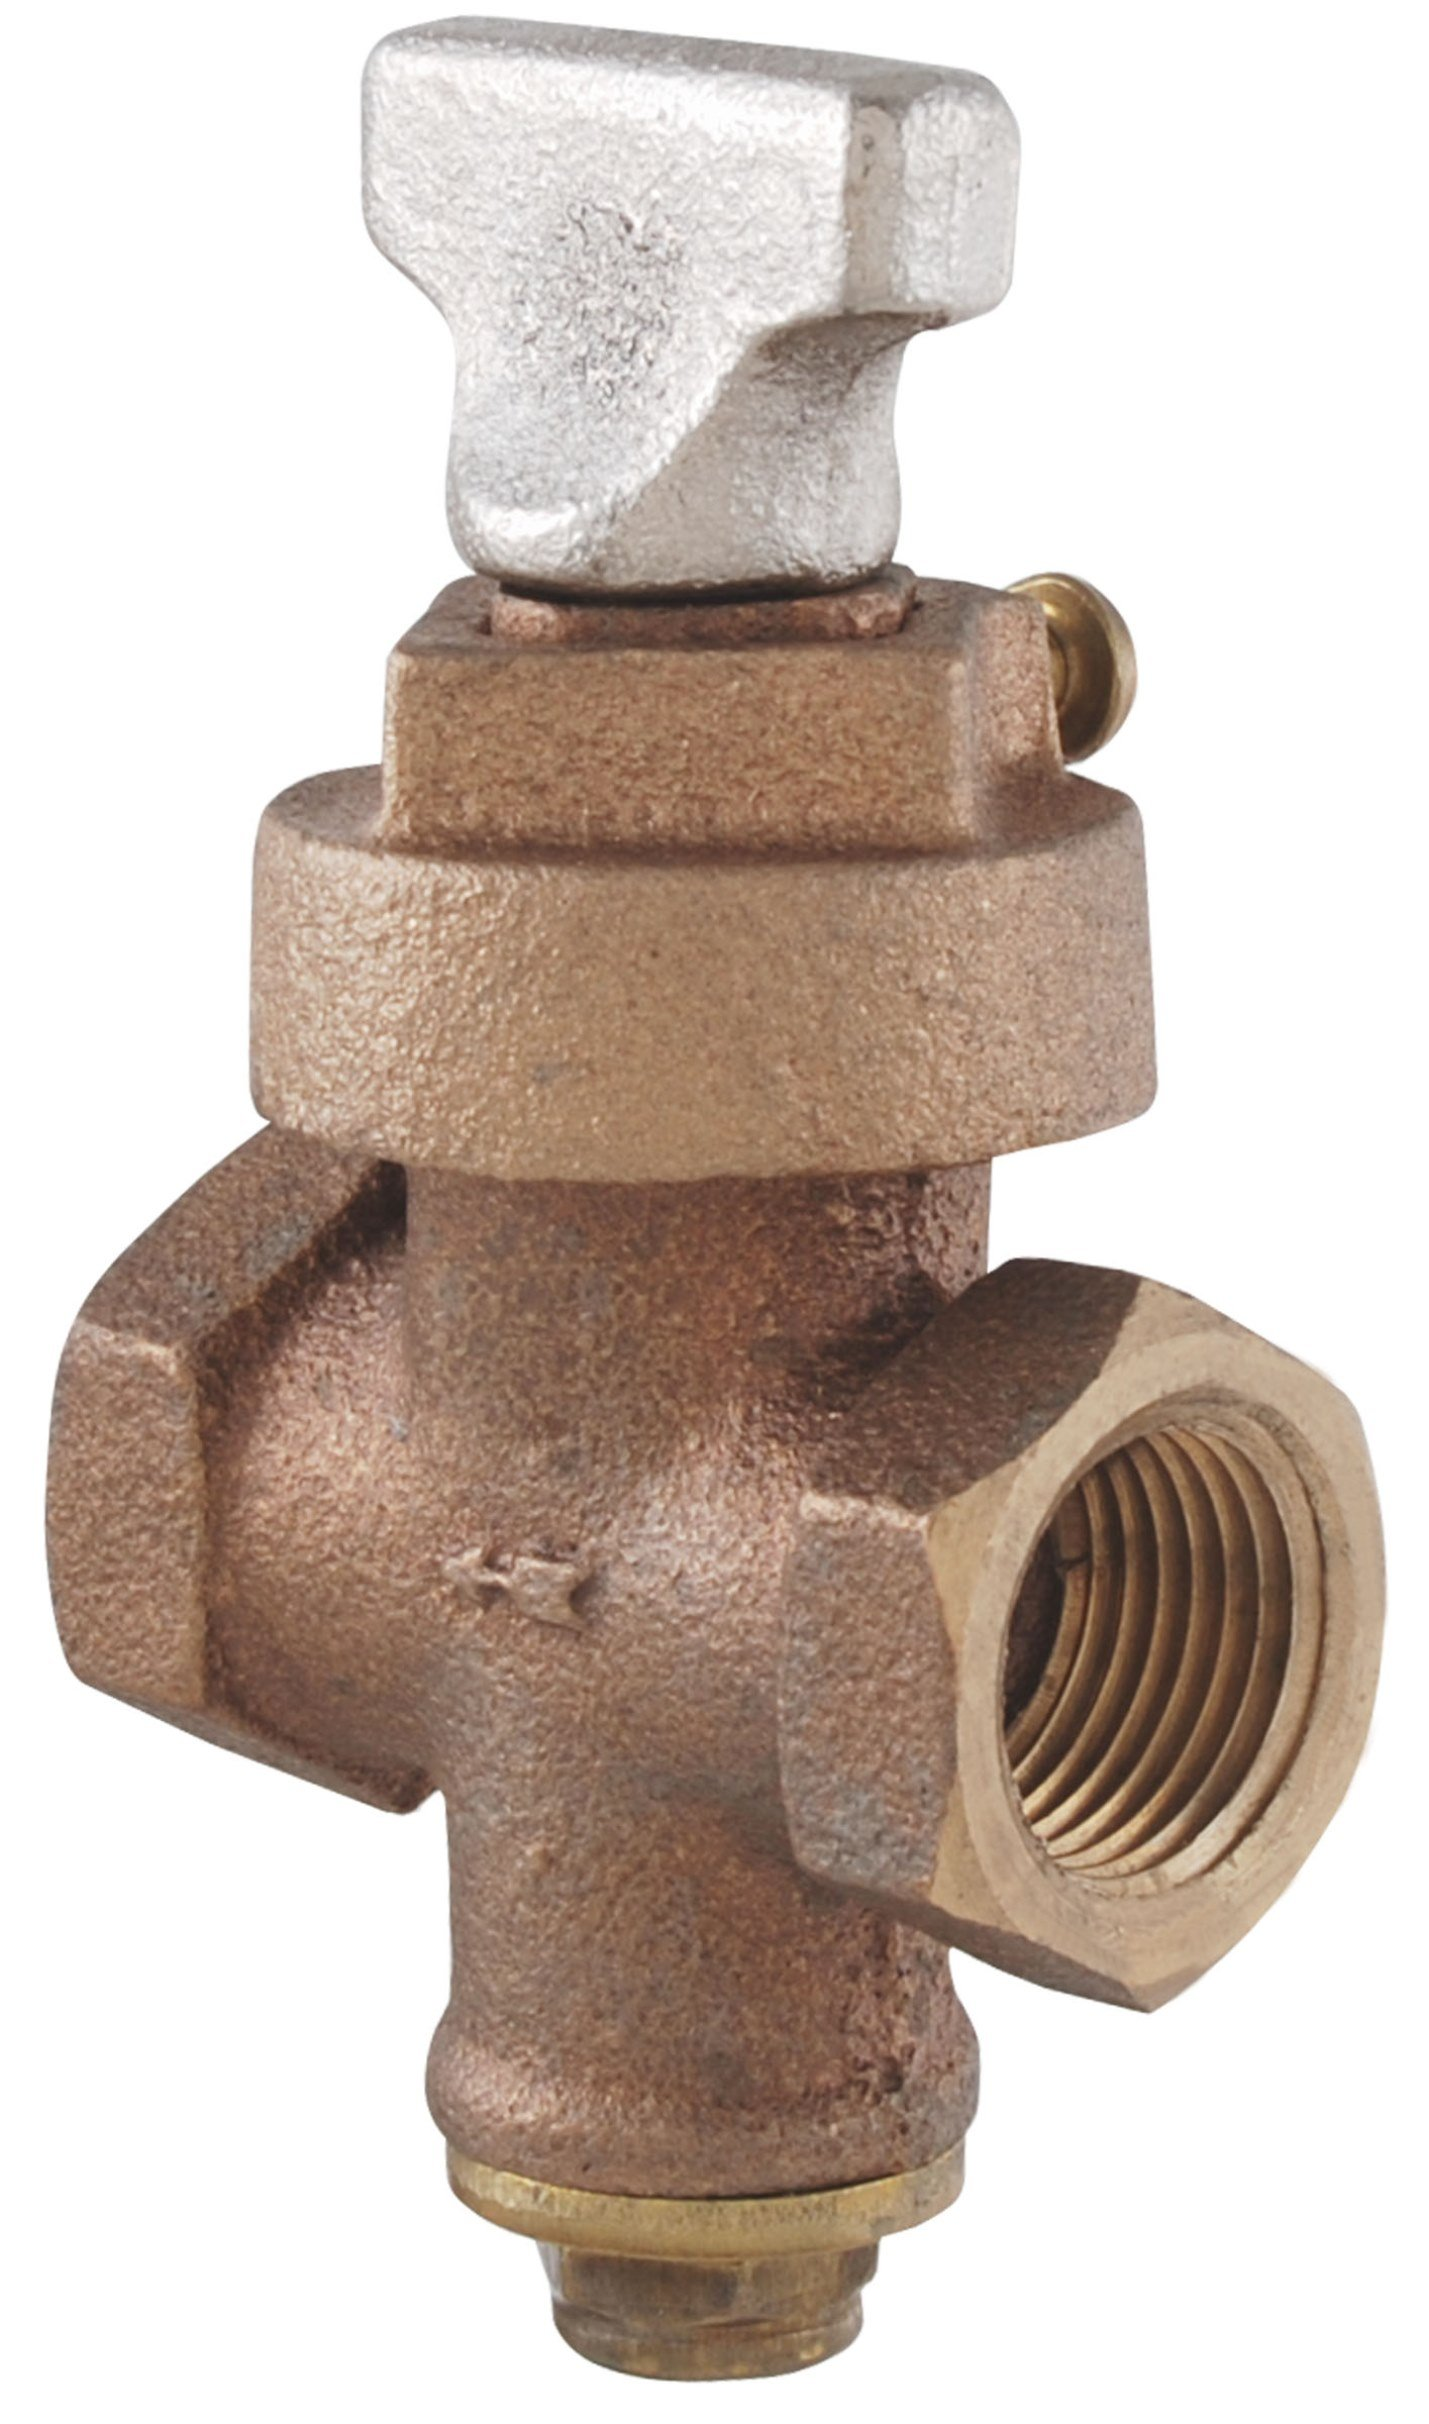 LDR 021 6904 3/4-Inch Stop and Drain Key Valve, Bronze